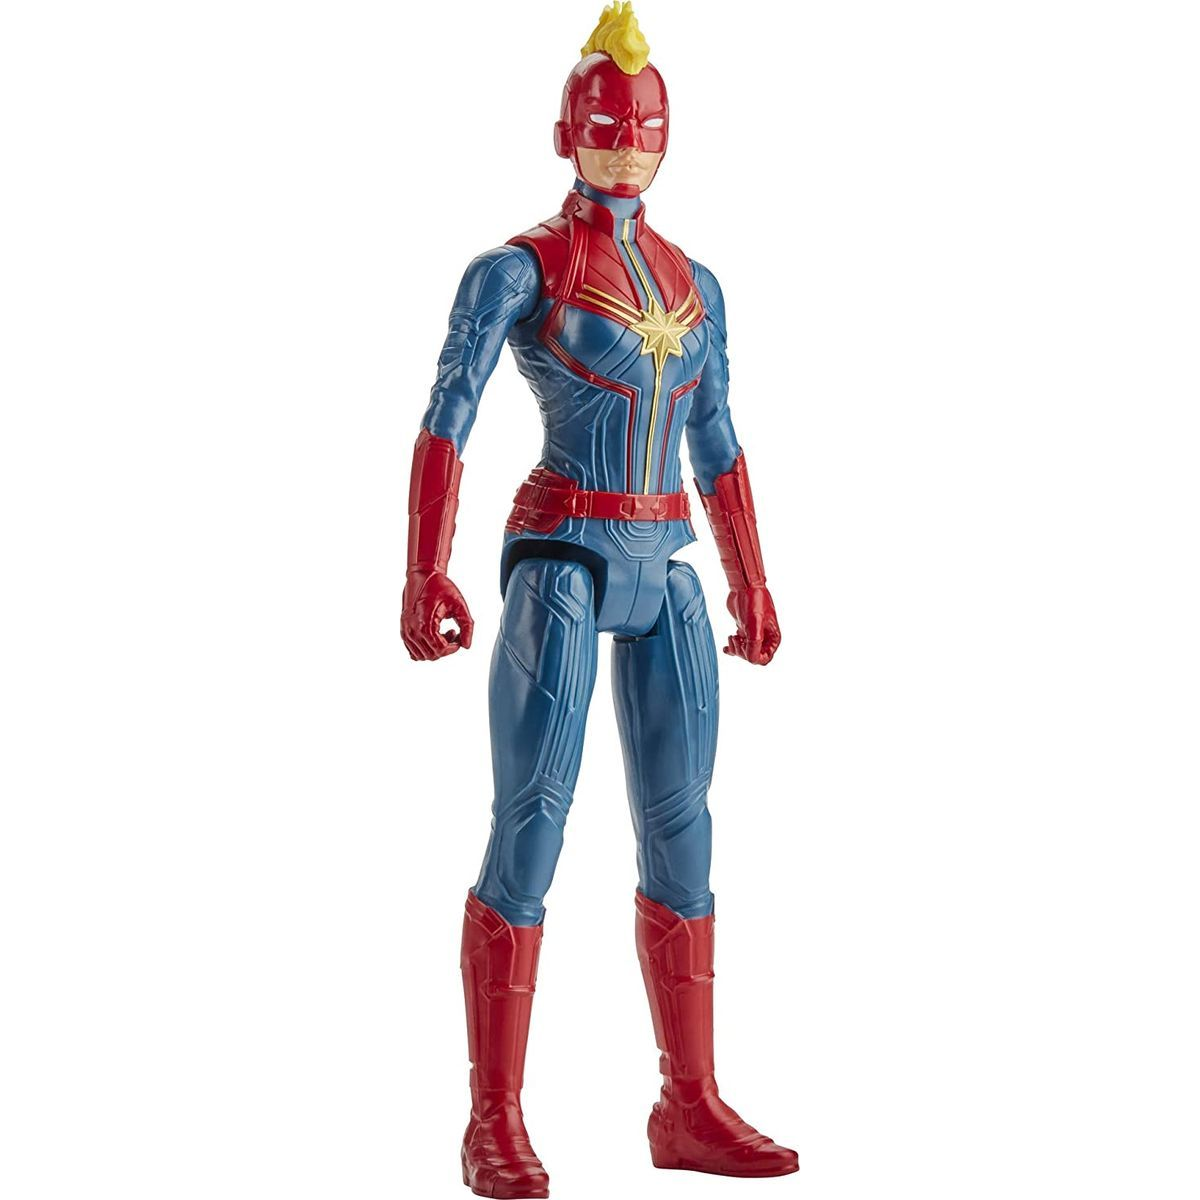 Hasbro Avengers 30 cm figurka Titan hero Innovation Captain Marvel